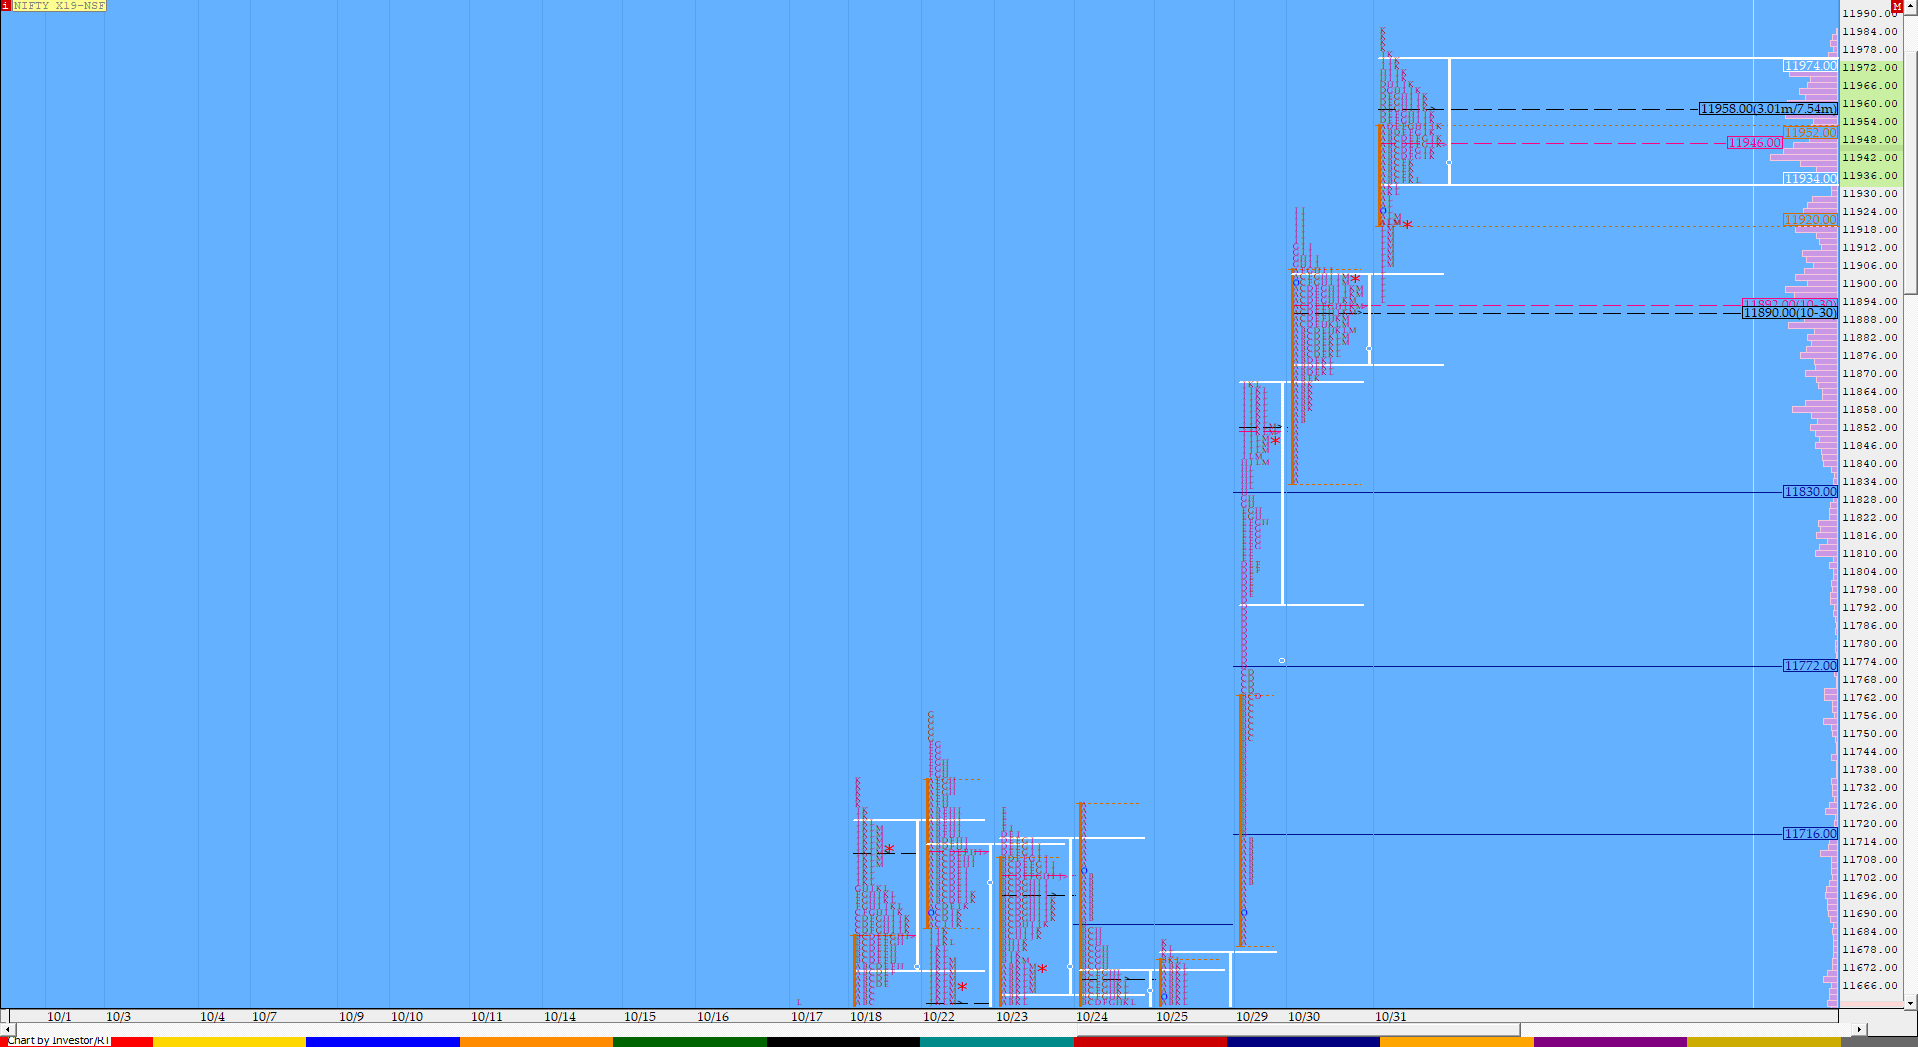 Market Profile Analysis dated 31st October 2